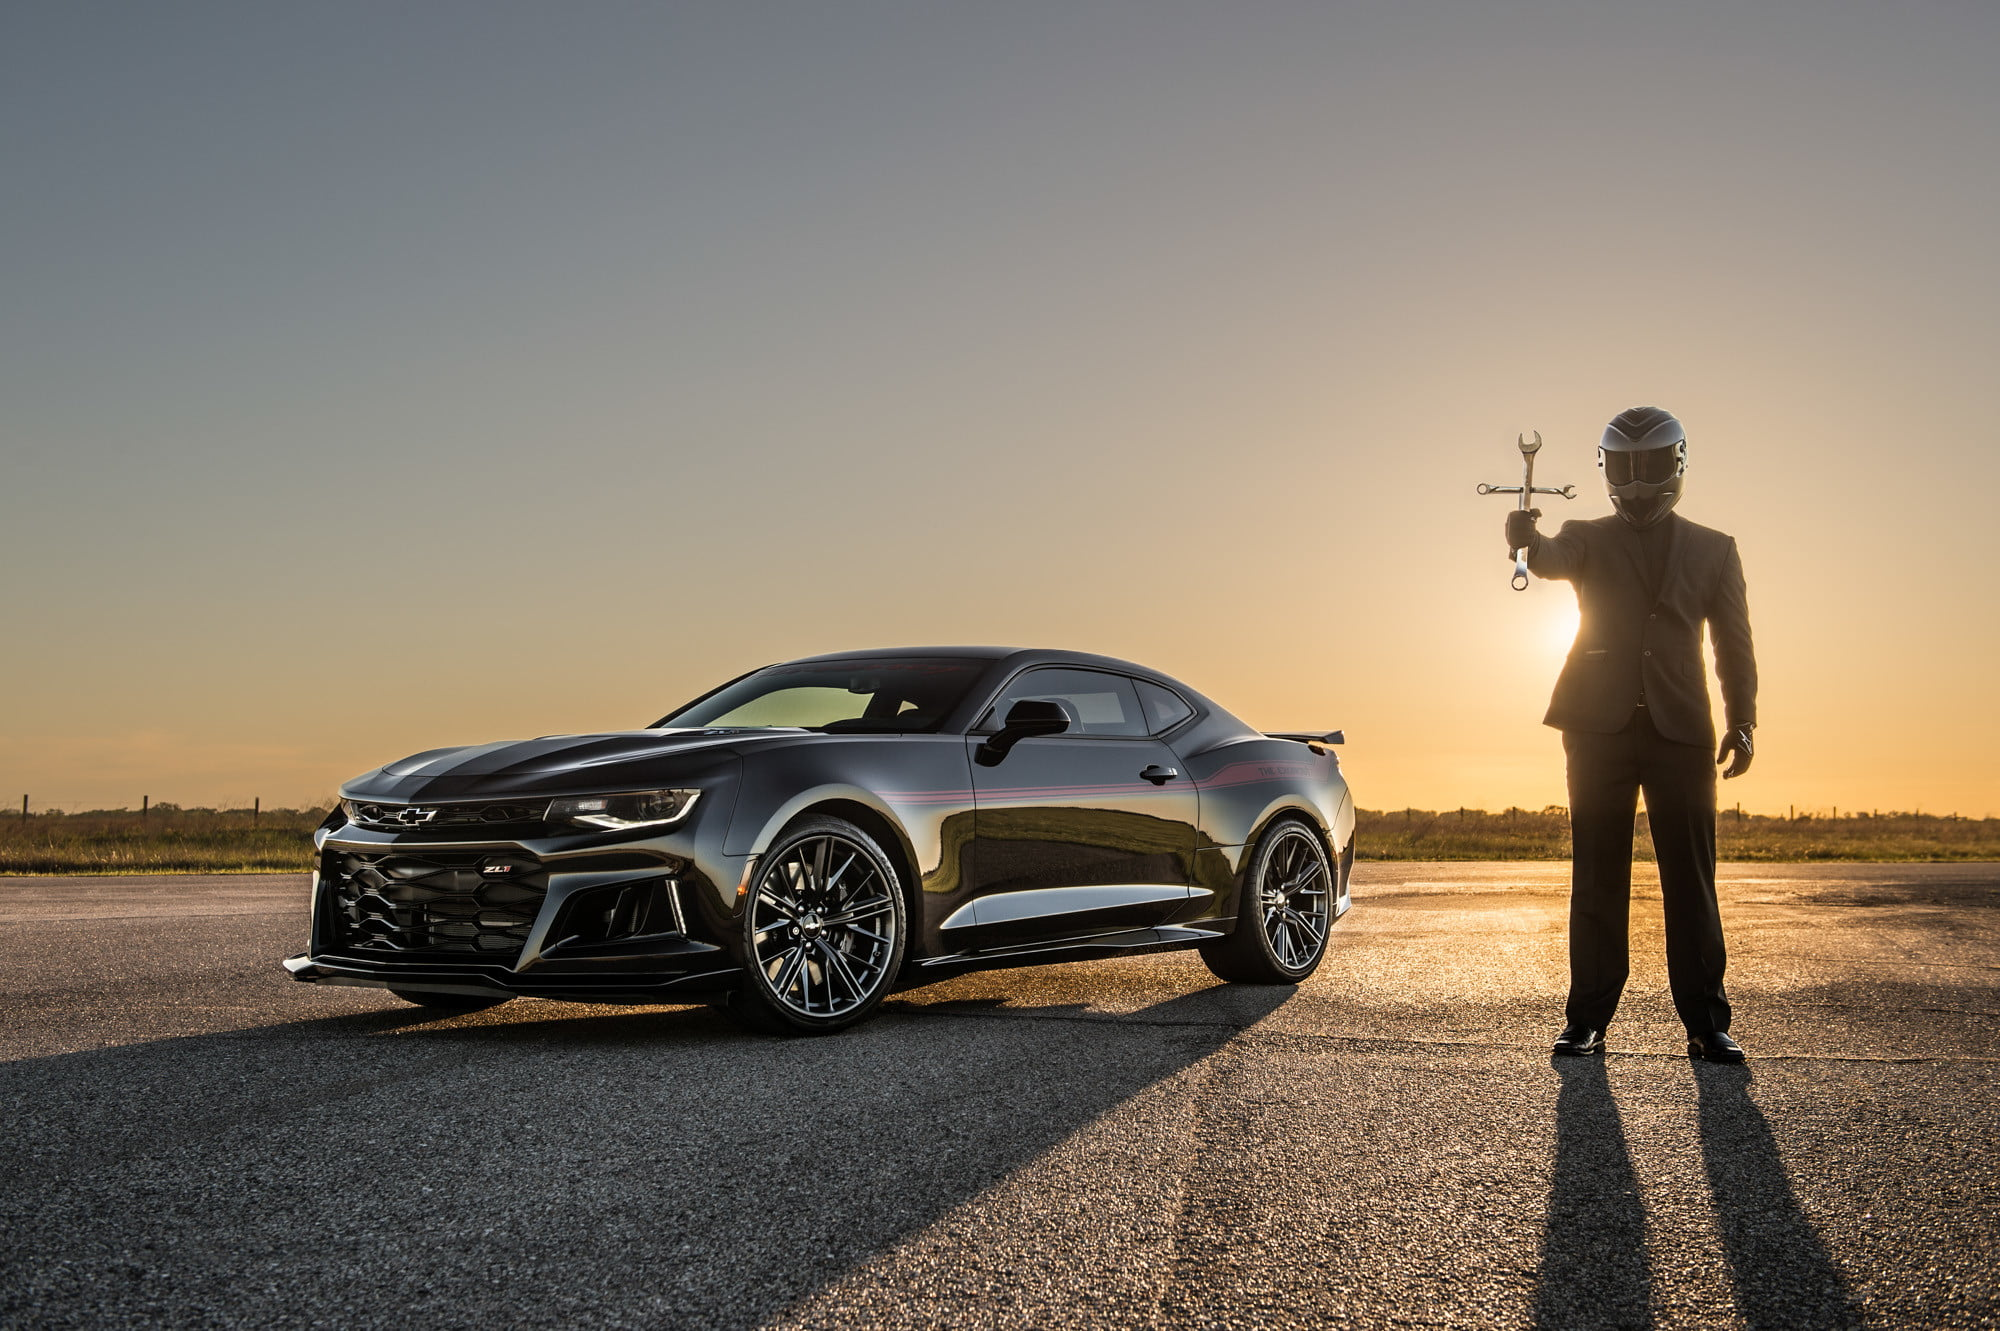 Demon-slaying Hennessey Exorcist Camaro Hits Top Speed of